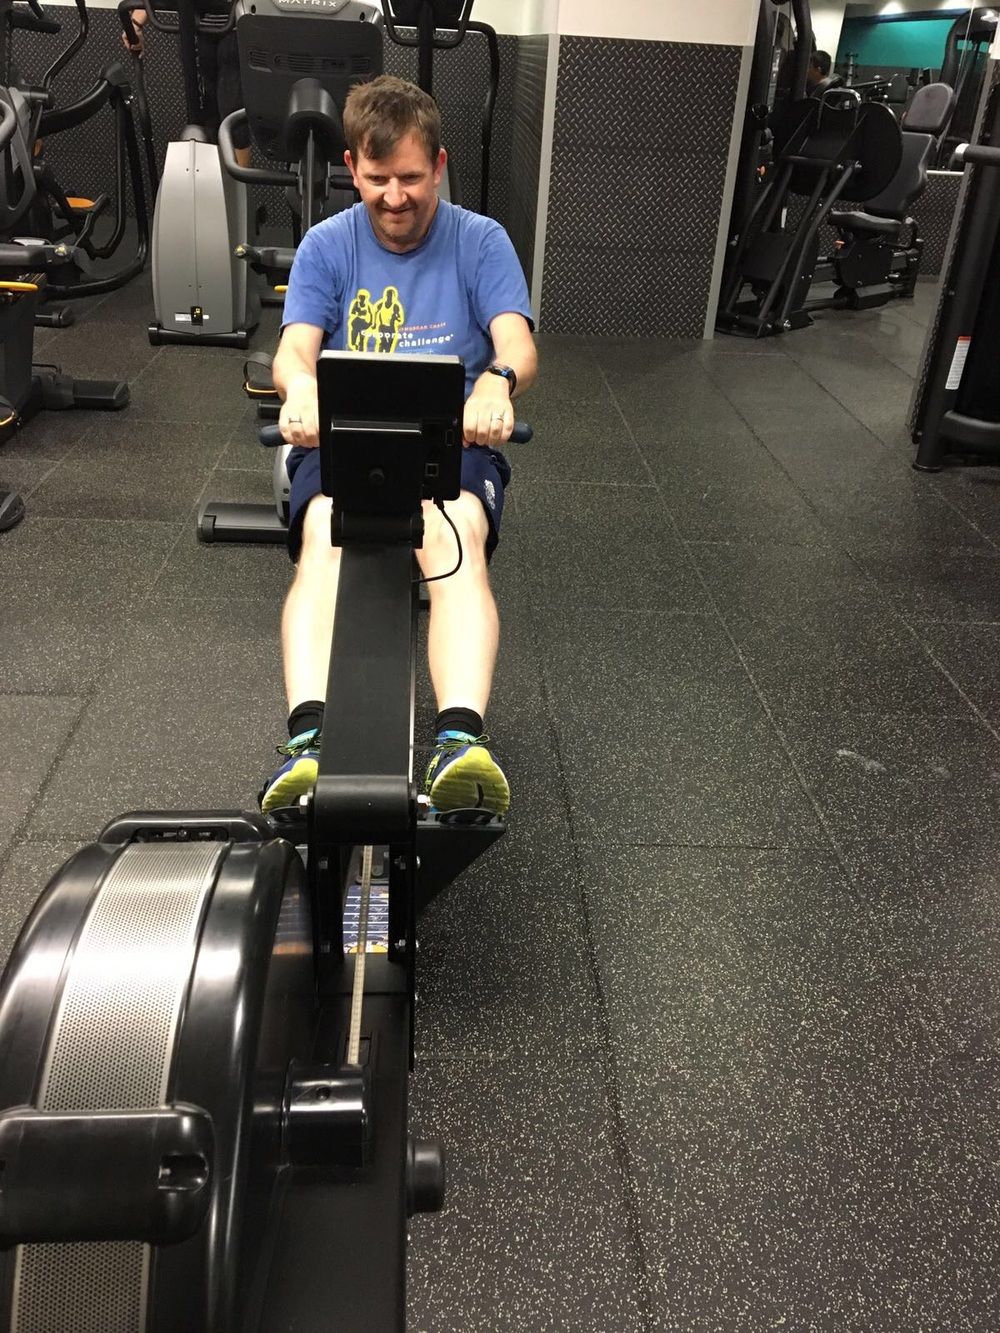 Me at the gym training for the 100km walk